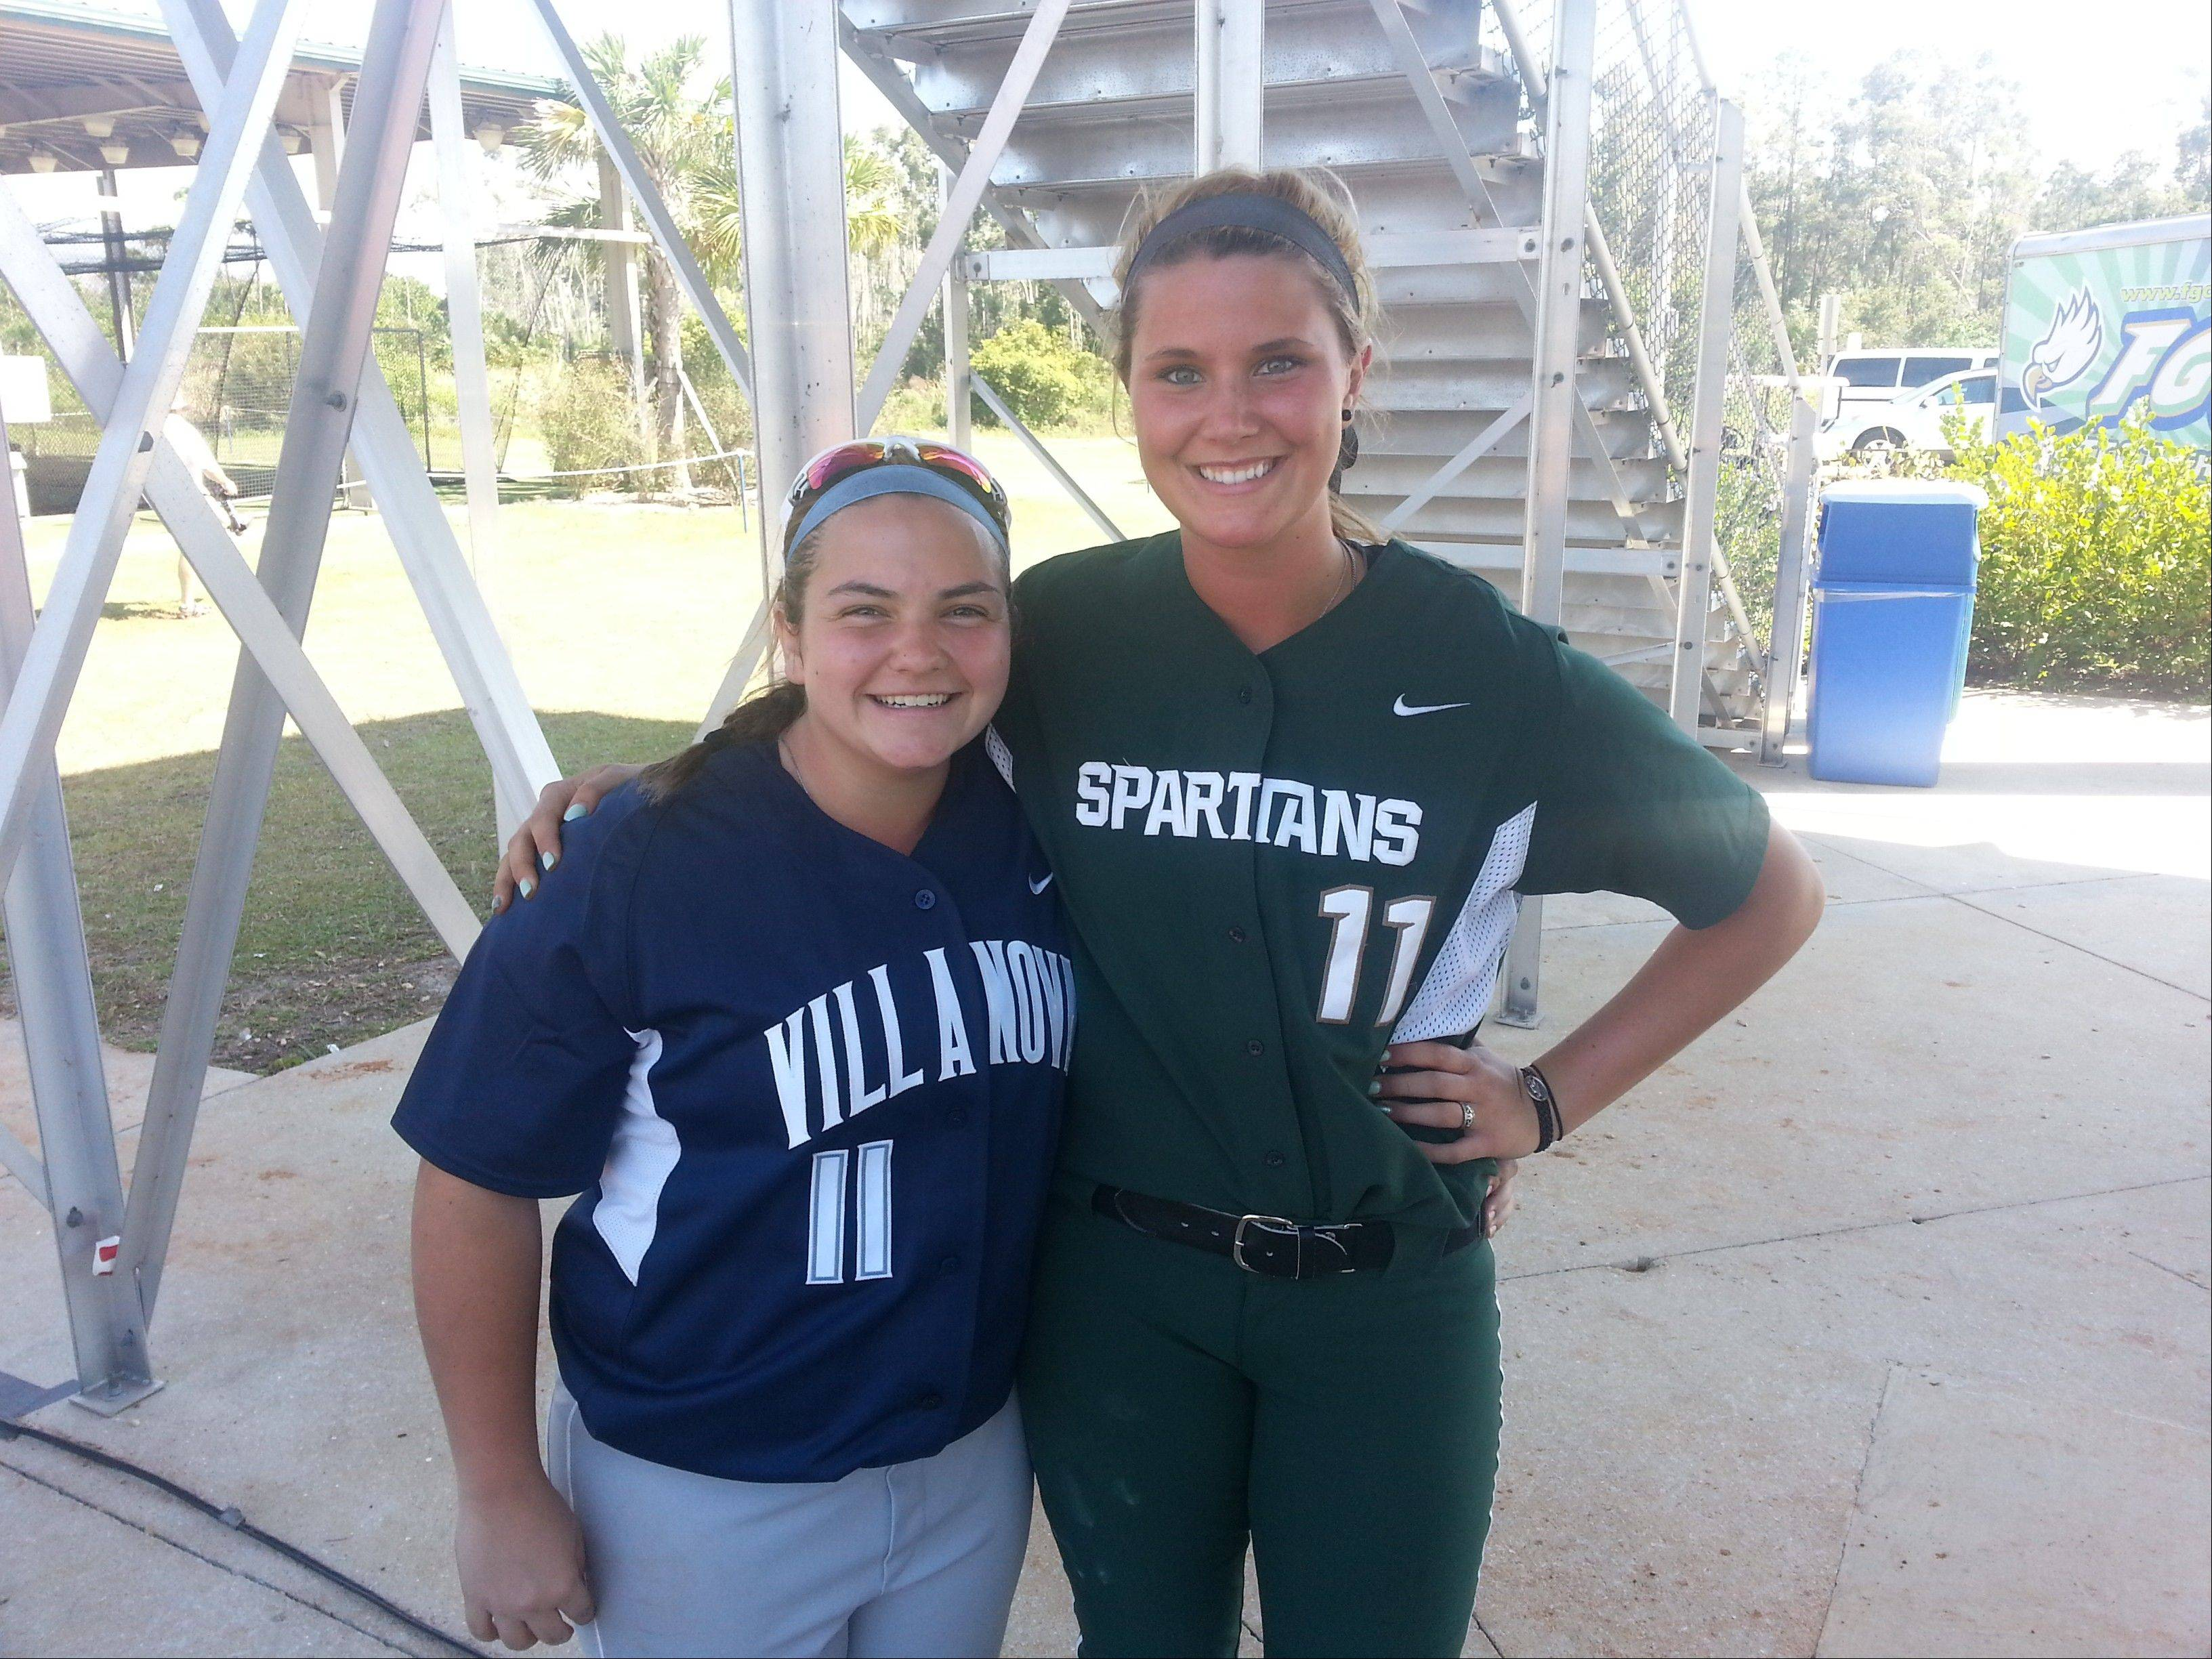 Former Elk Grove High School teammates Carly Danek, left, and Dani Goranson found themselves on opposing squads for a recent NCAA Division I softball contest between Villanova and Michigan State.